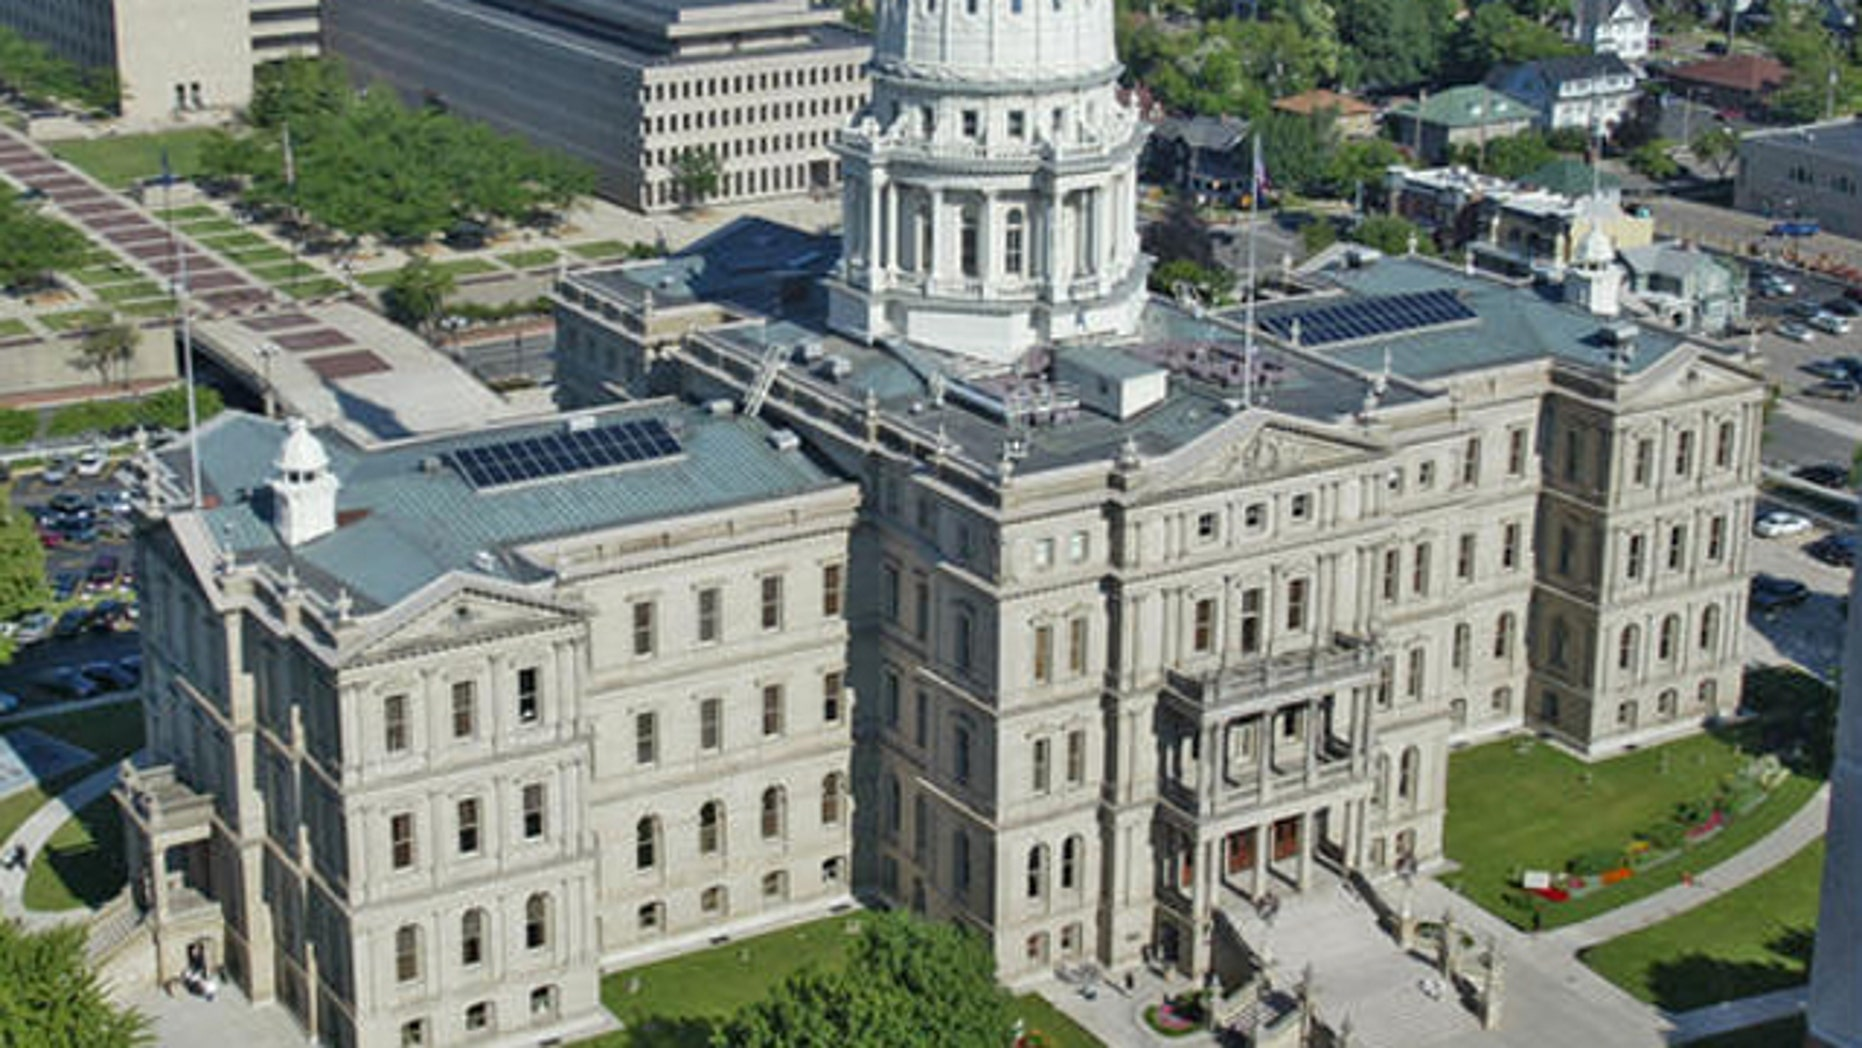 The Michigan Capitol building is seen from the Boji Tower in Lansing, Mich.